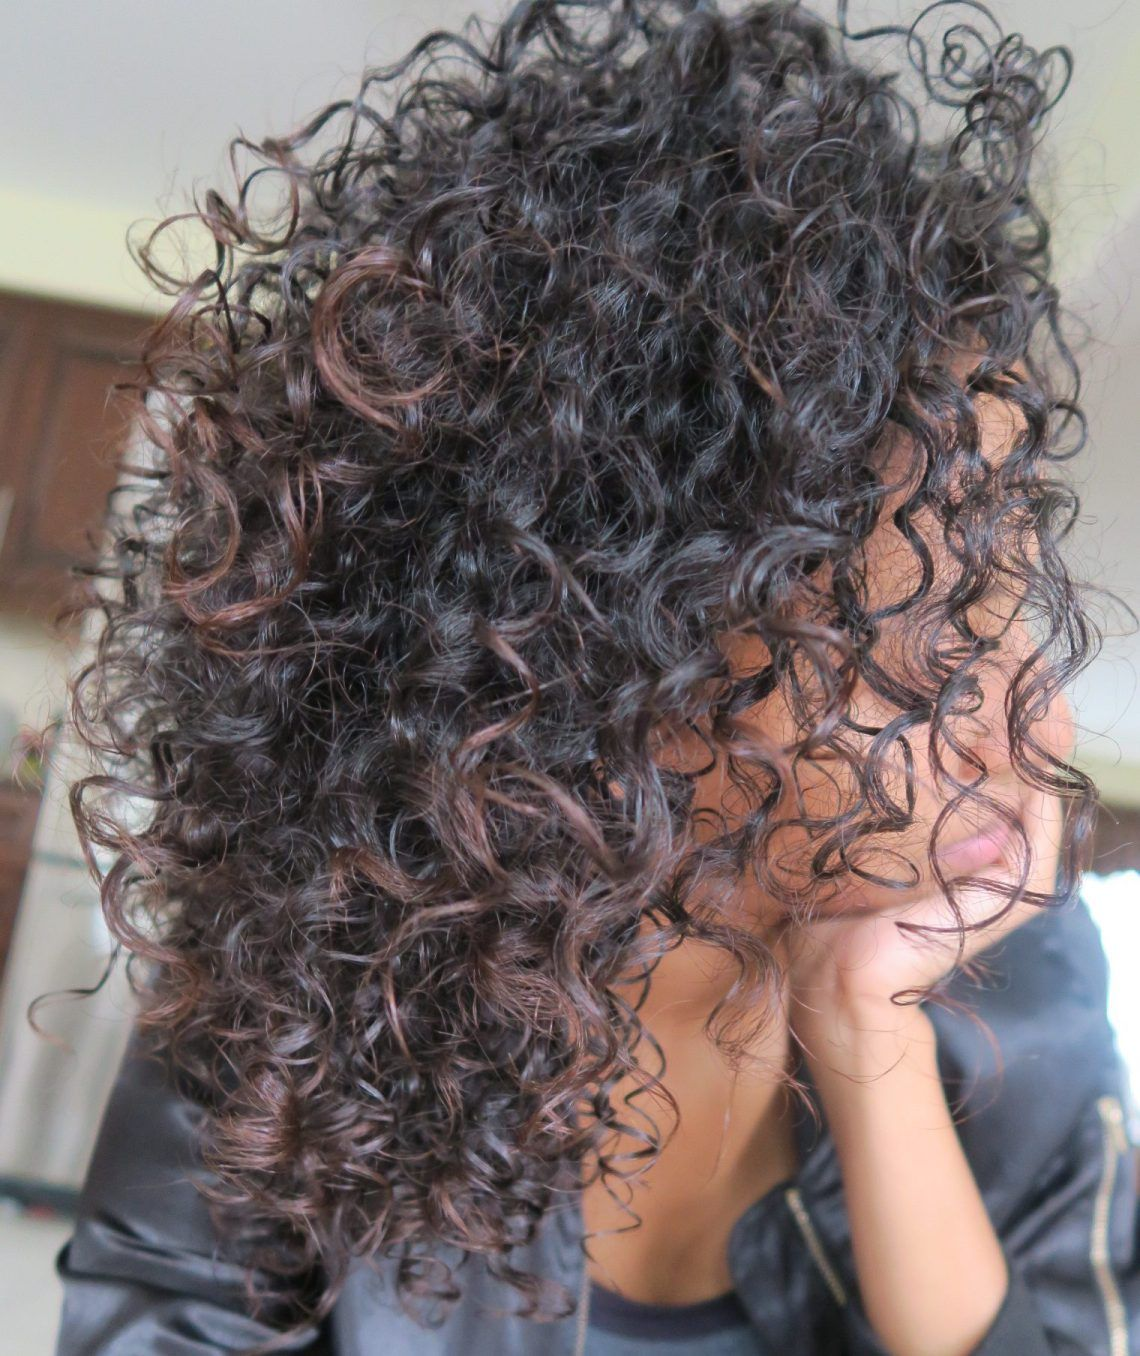 How to properly care for damaged curls nettes scrapbook